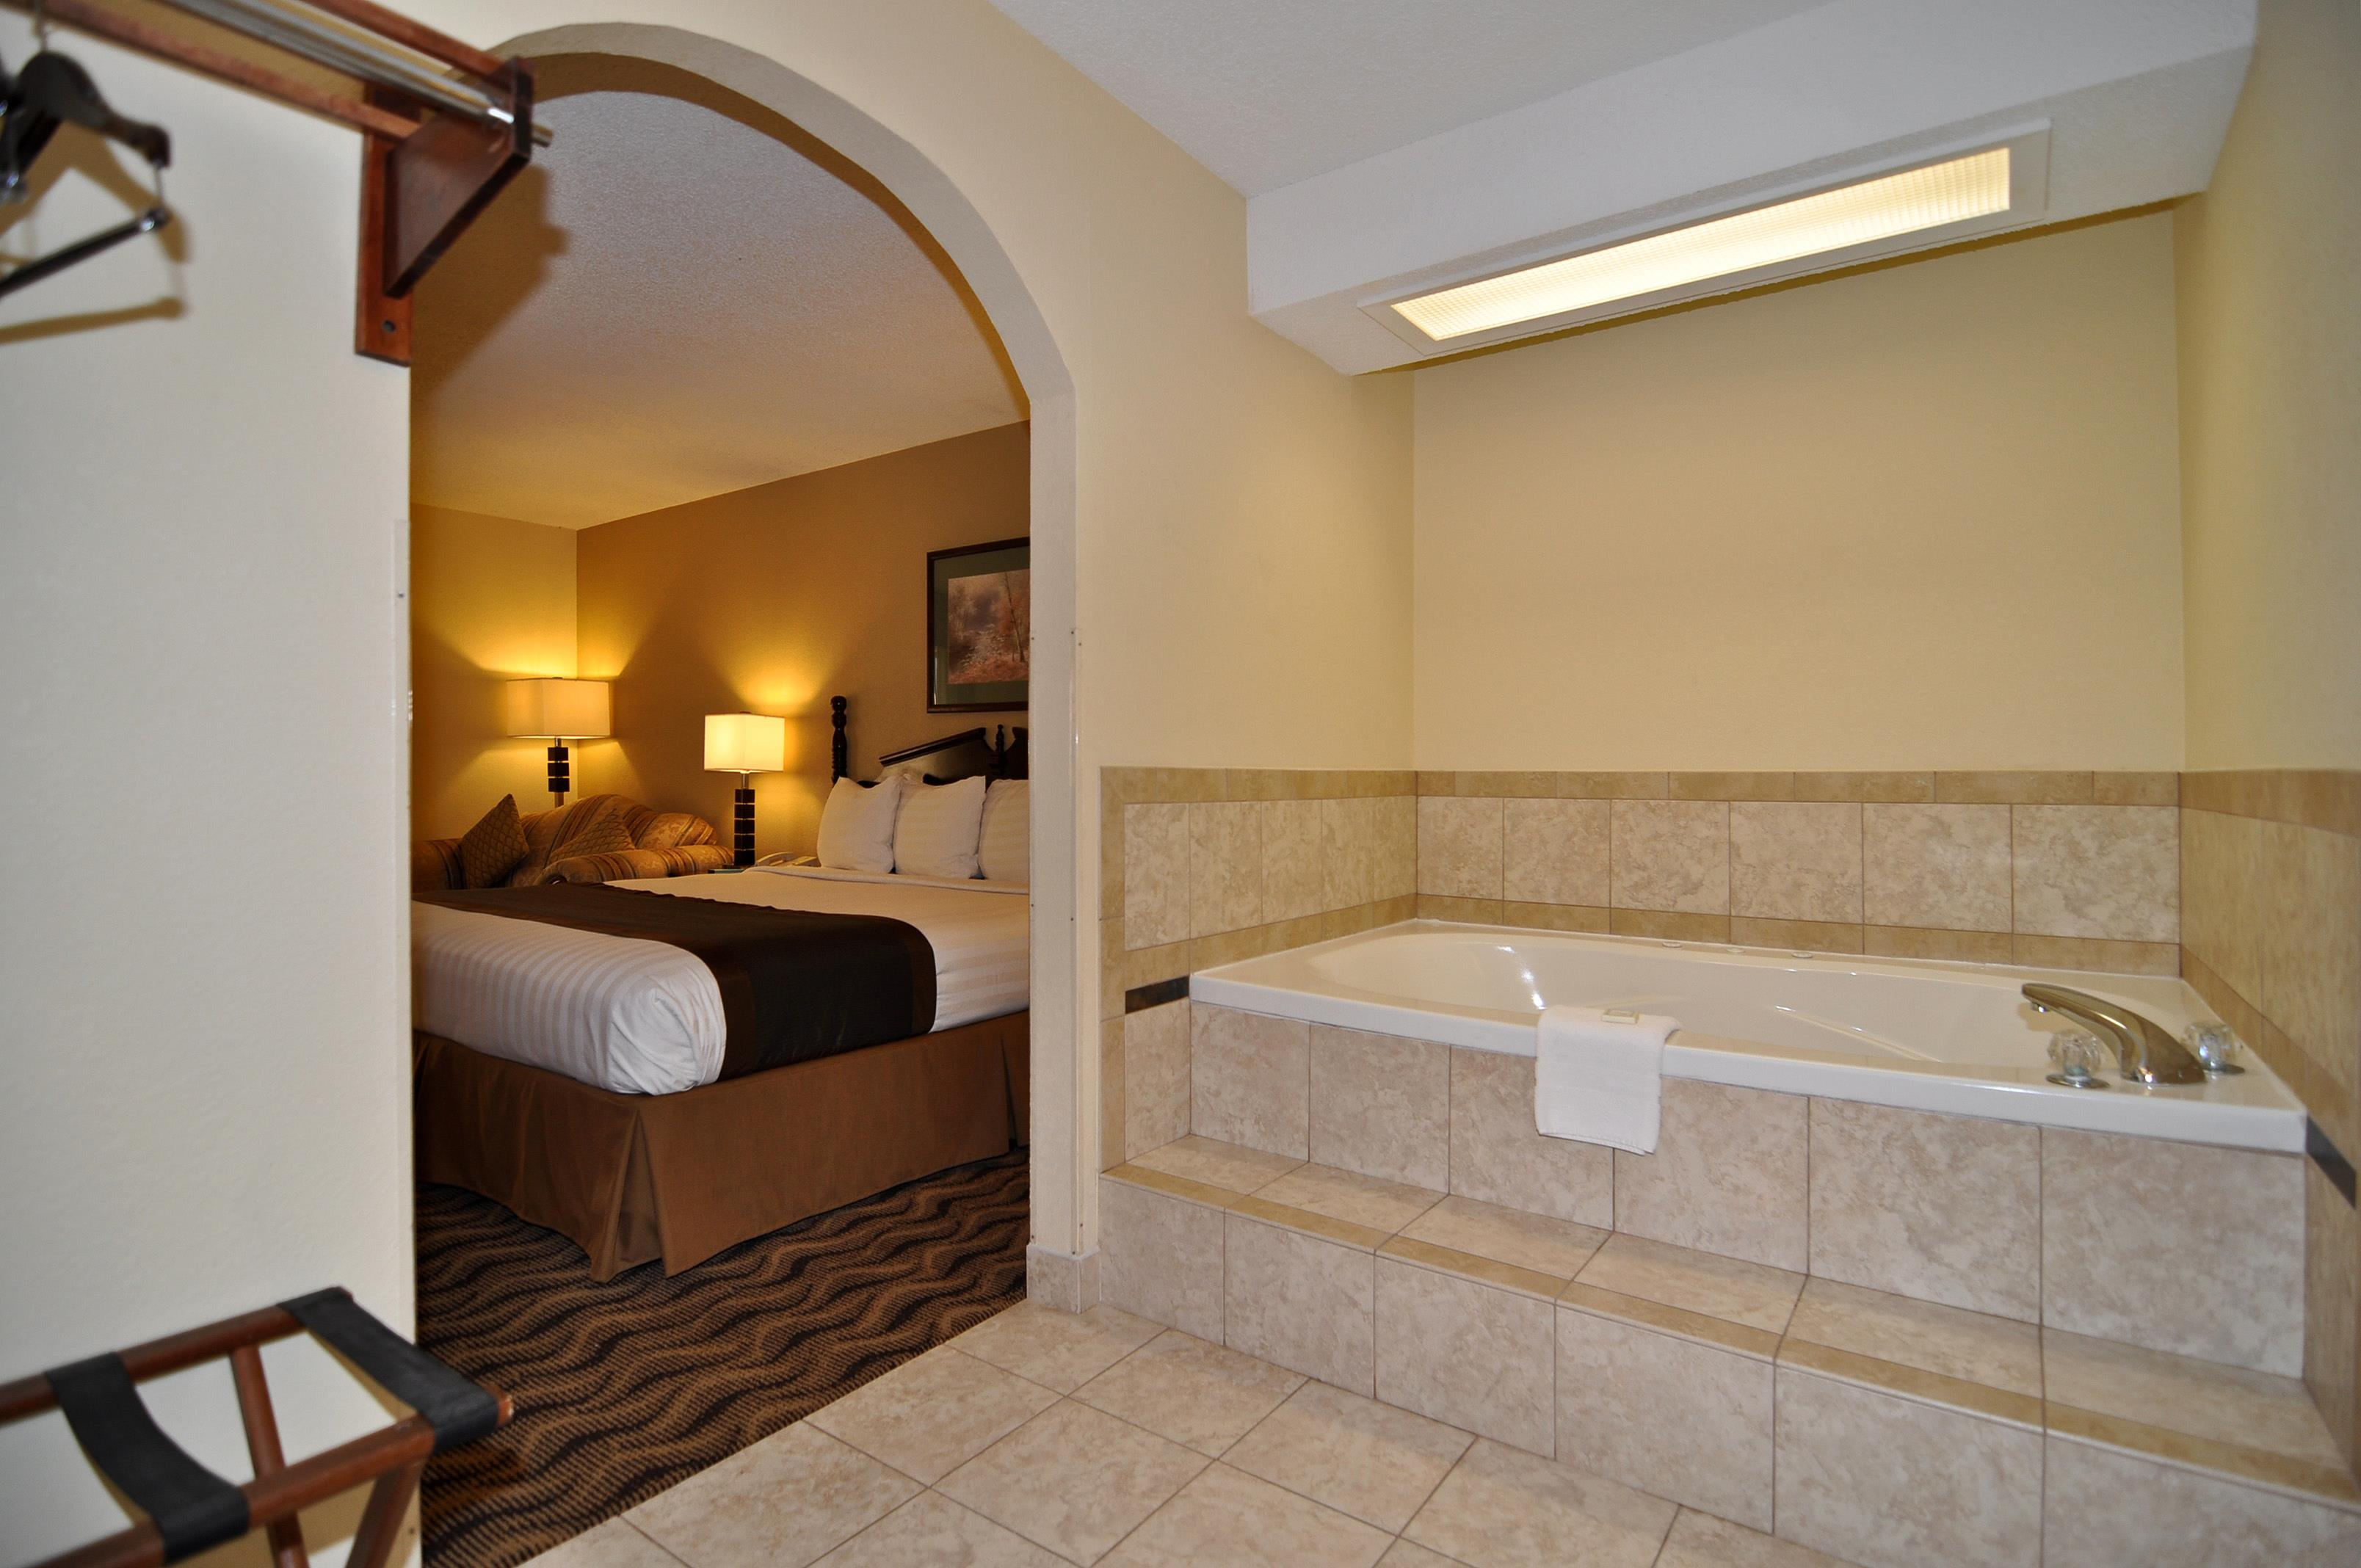 Best Western Andalusia Inn image 23